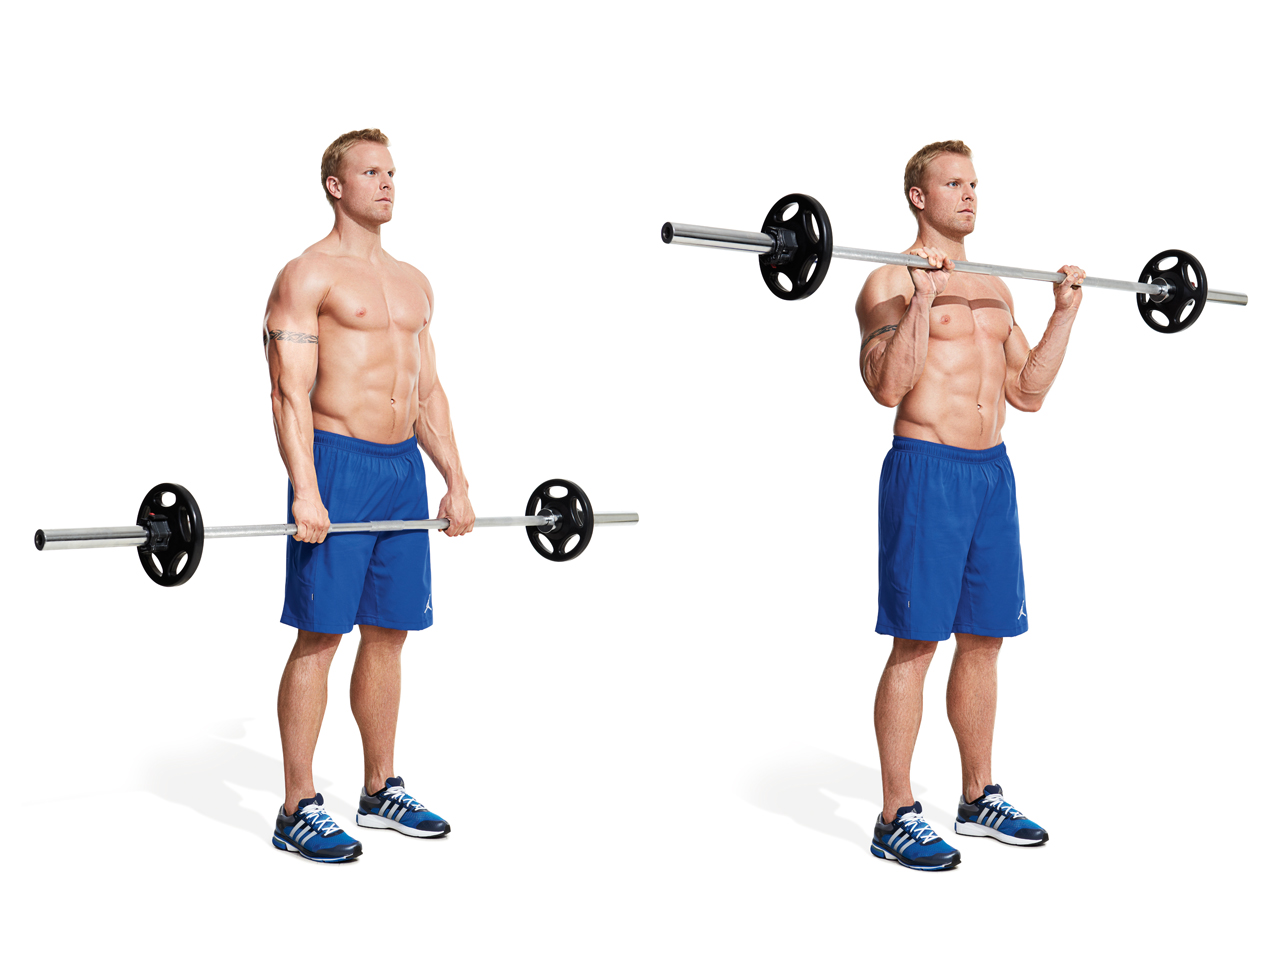 Reverse Curl Video - Watch Proper Form, Get Tips & More ...